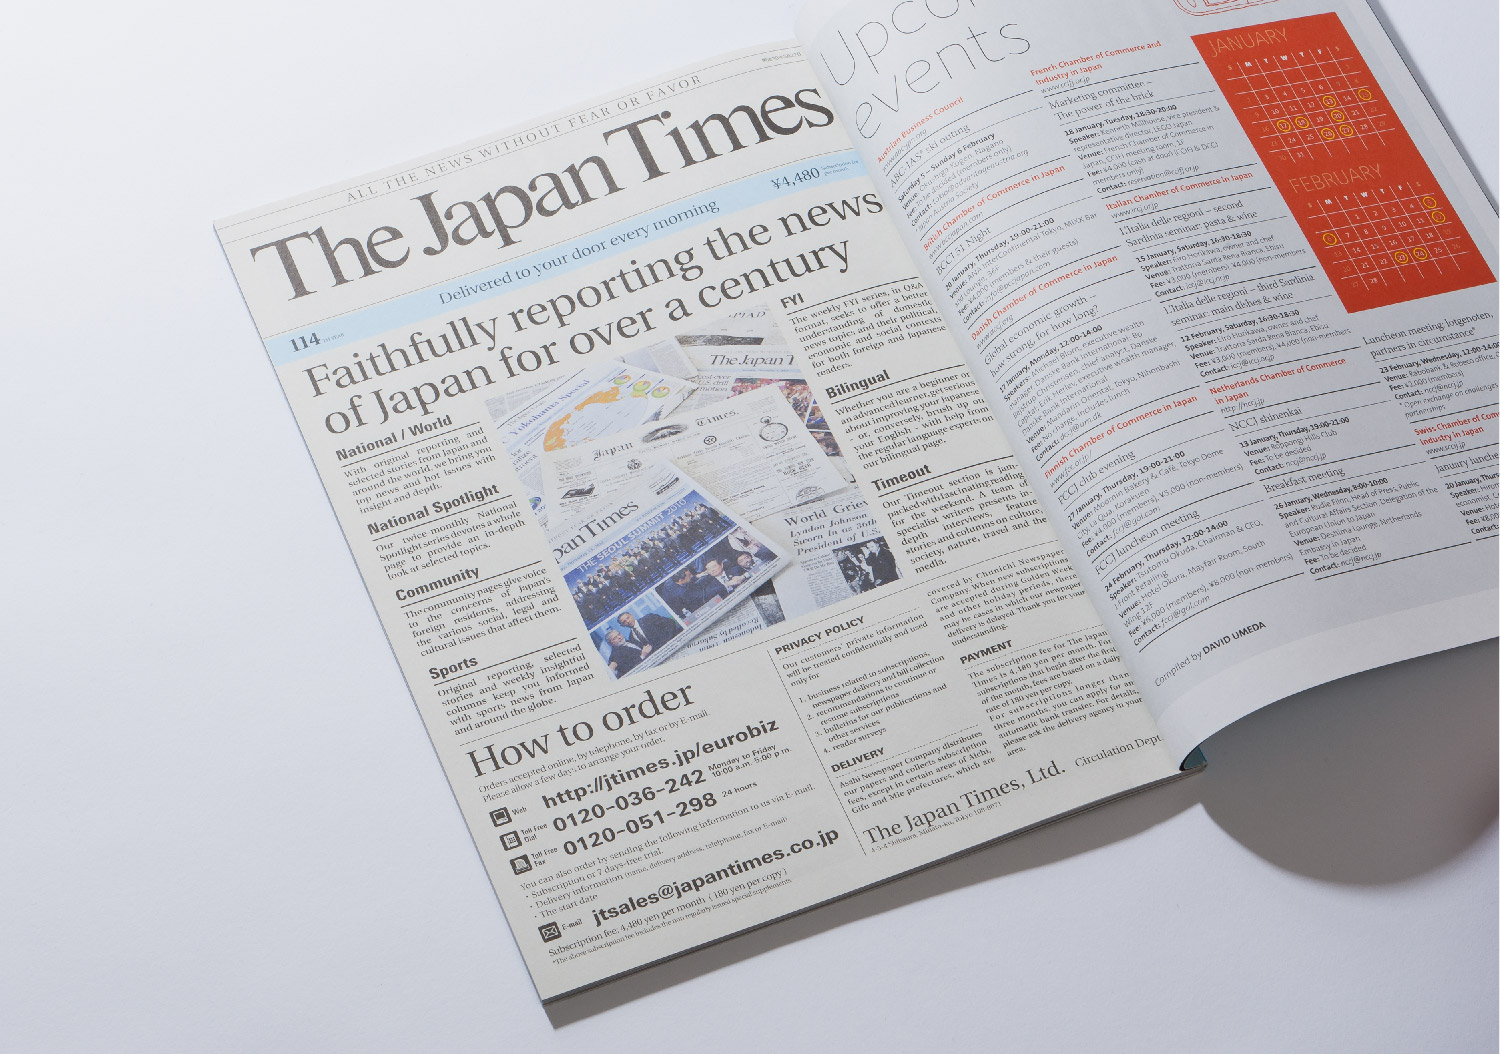 The Japan Times_3